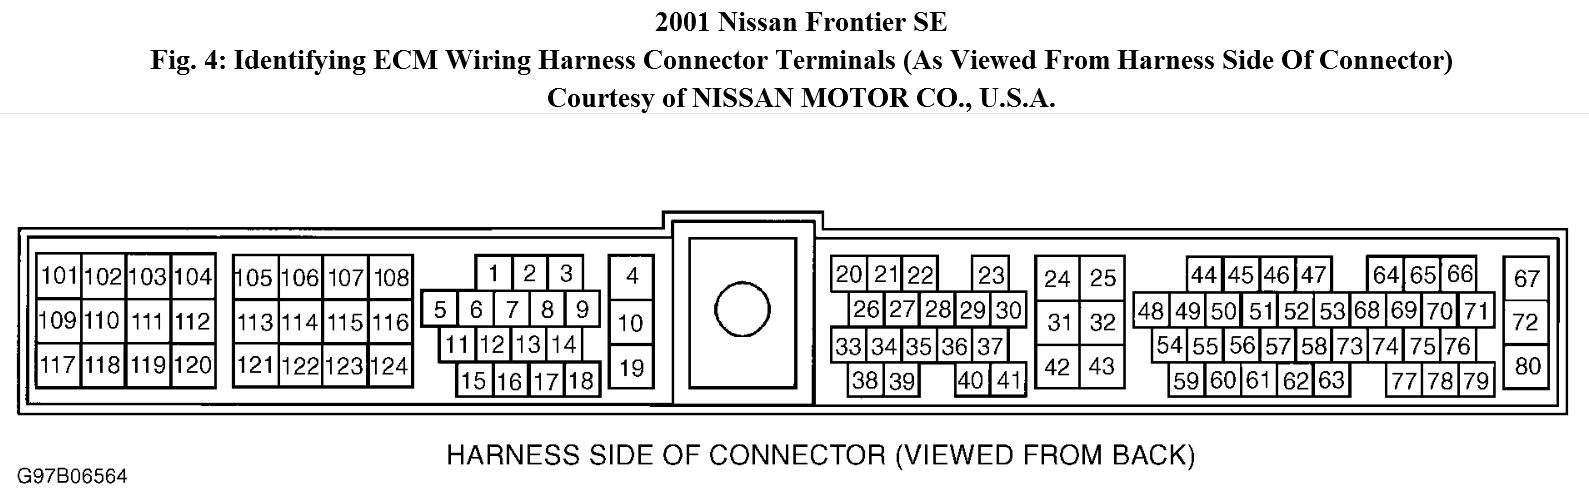 hight resolution of i have a 2001 nissan frontier se xe w 3 3l 6cyl engine no rh 2carpros com 1998 nissan frontier wiring diagram 98 nissan frontier wiring diagram